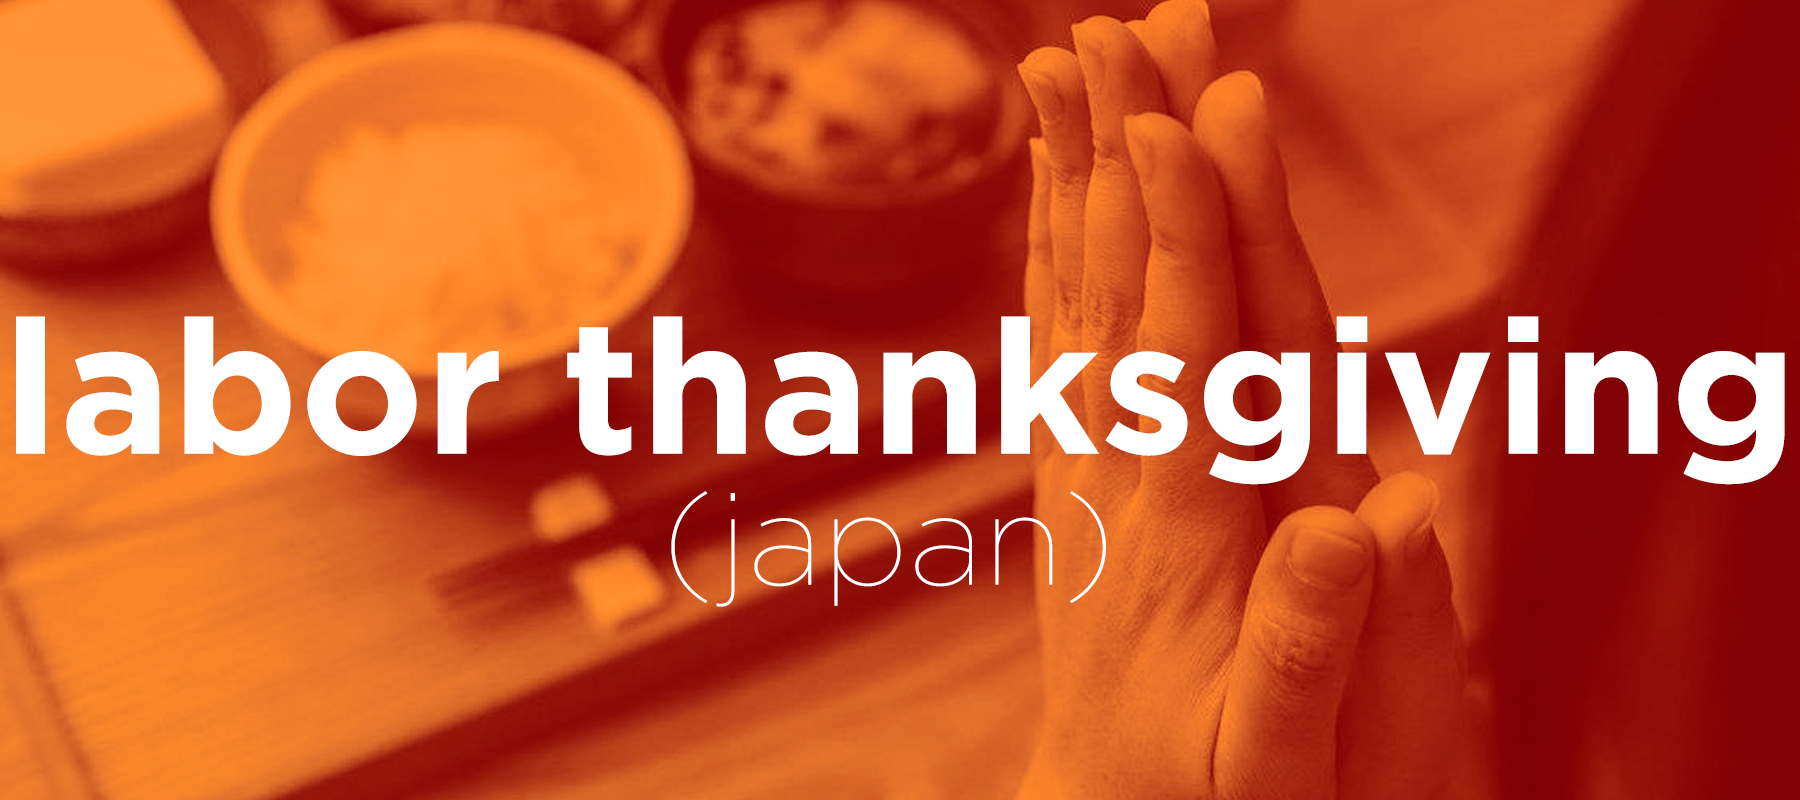 Thanksgiving Tradition Japan